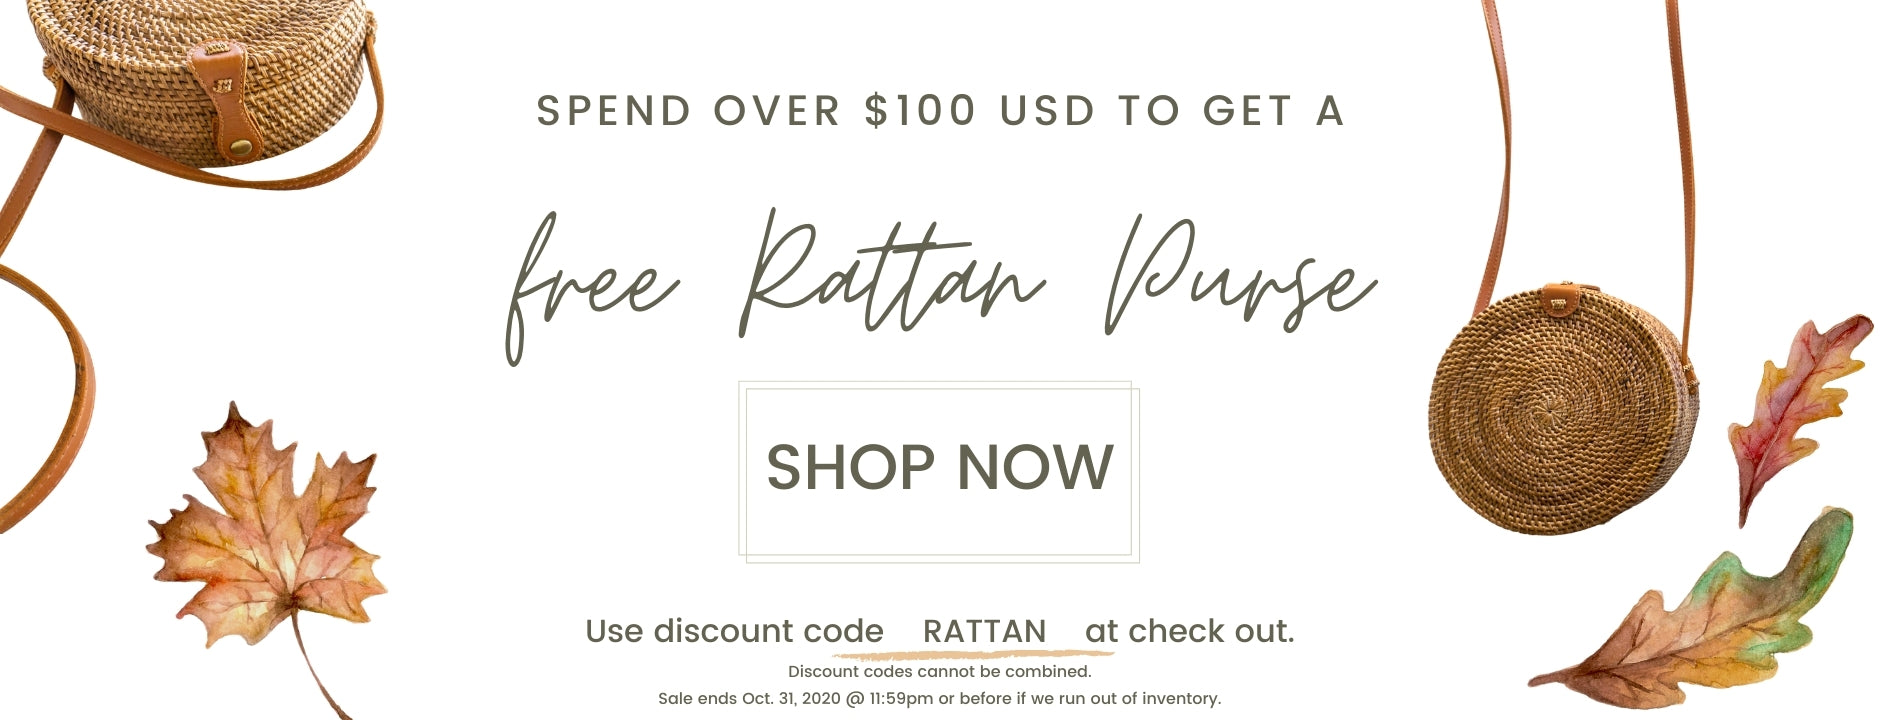 PIYOGA Pants - Free Rattan Purse when you spend over $100